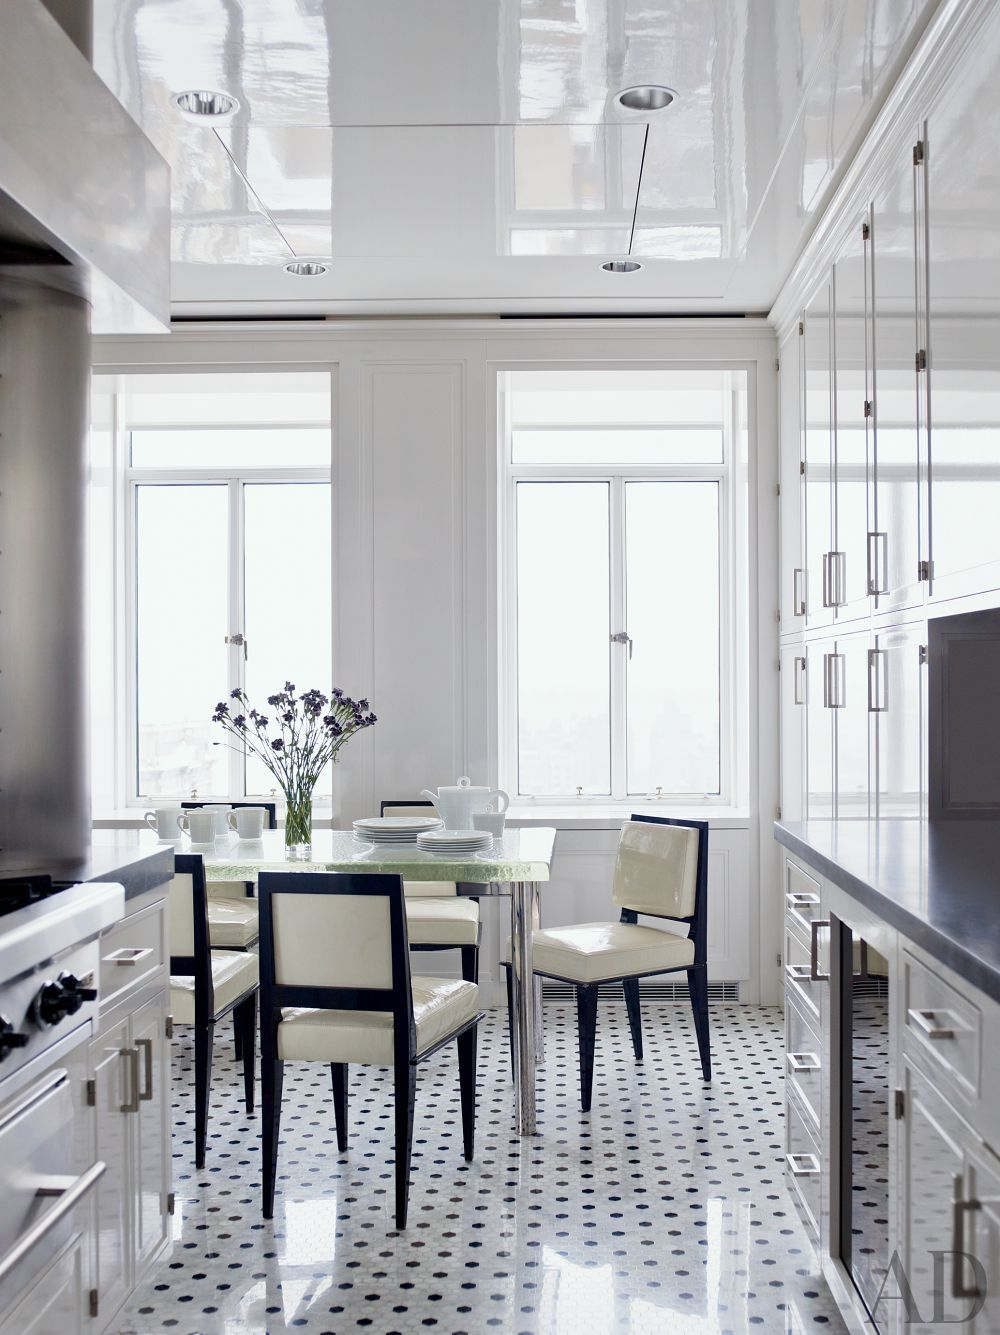 Kitchen Designers Nyc Fascinating A Blackandwhite Kitchendelphine Krakoff's Pamplemousse Decorating Design